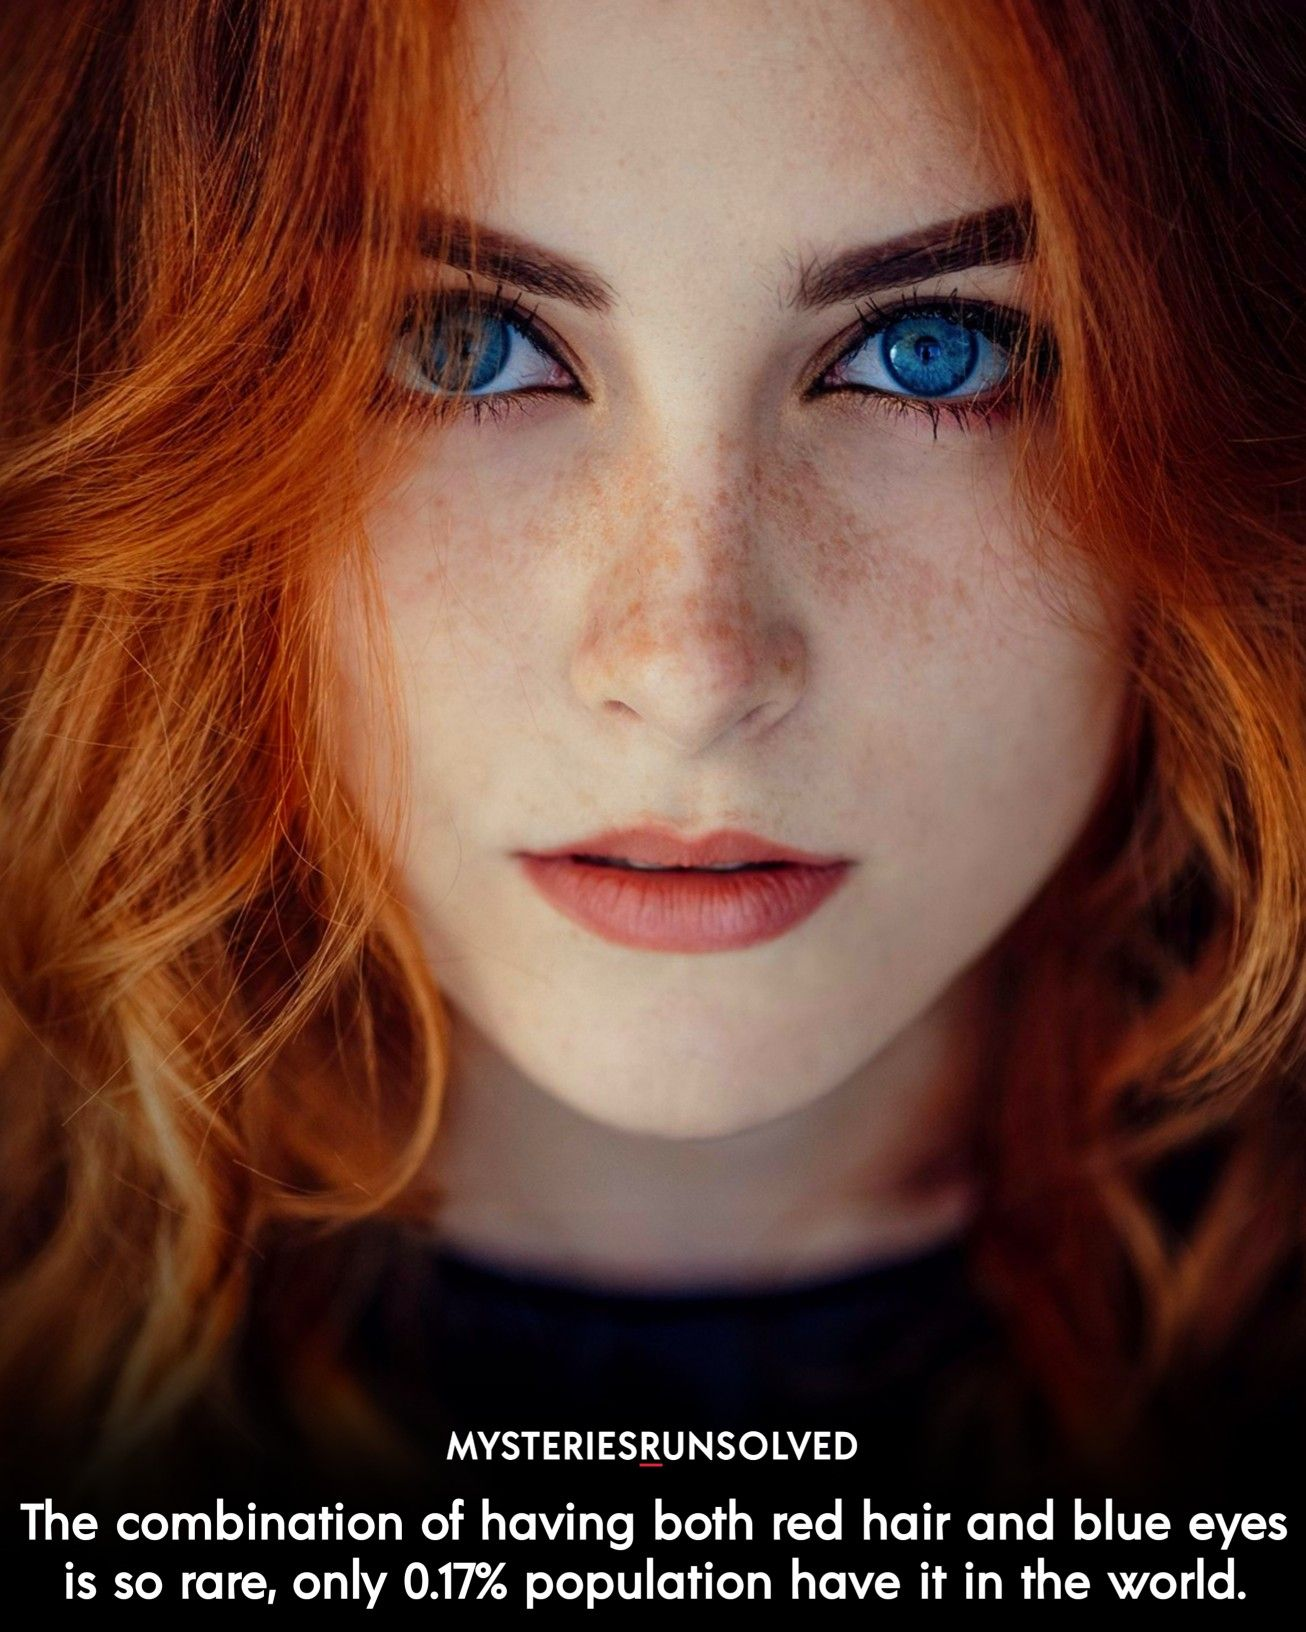 Red Hair Blue Eyes Combination In 2020 Red Hair Blue Eyes Red Hair Woman Beauty Eyes